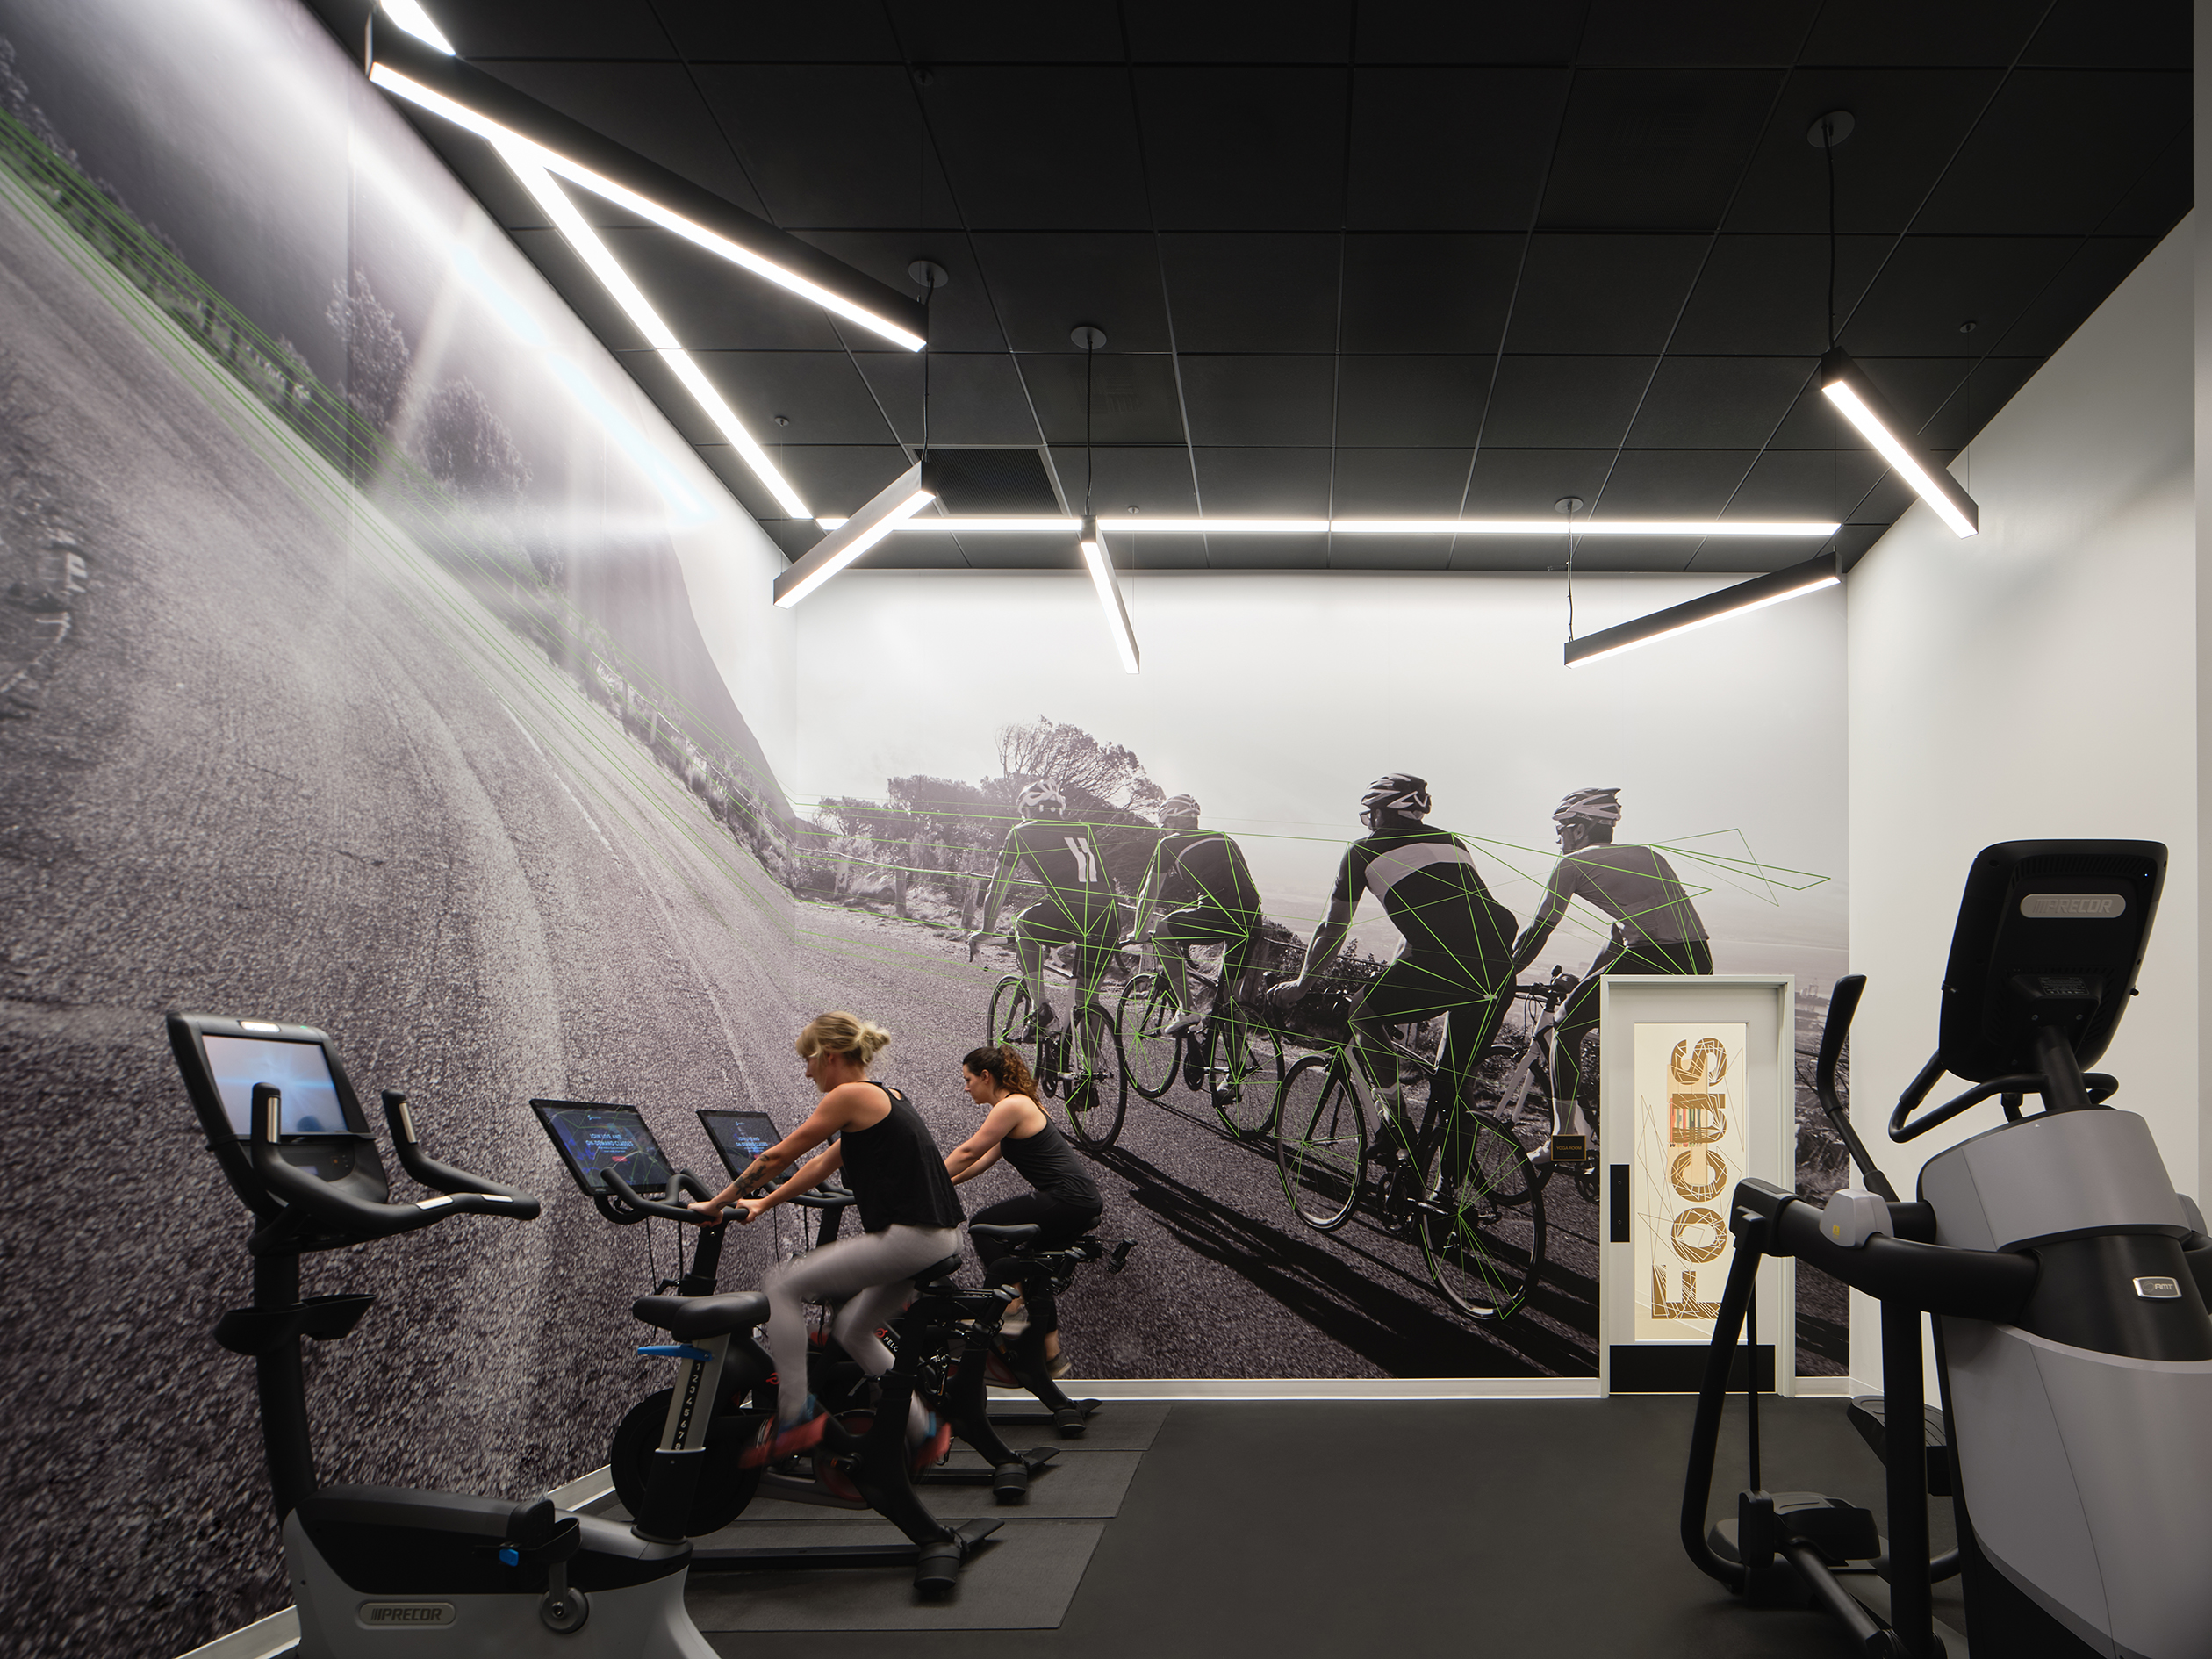 Fitness room with bikes, floor to celing graphics and two women on fitness equipment.